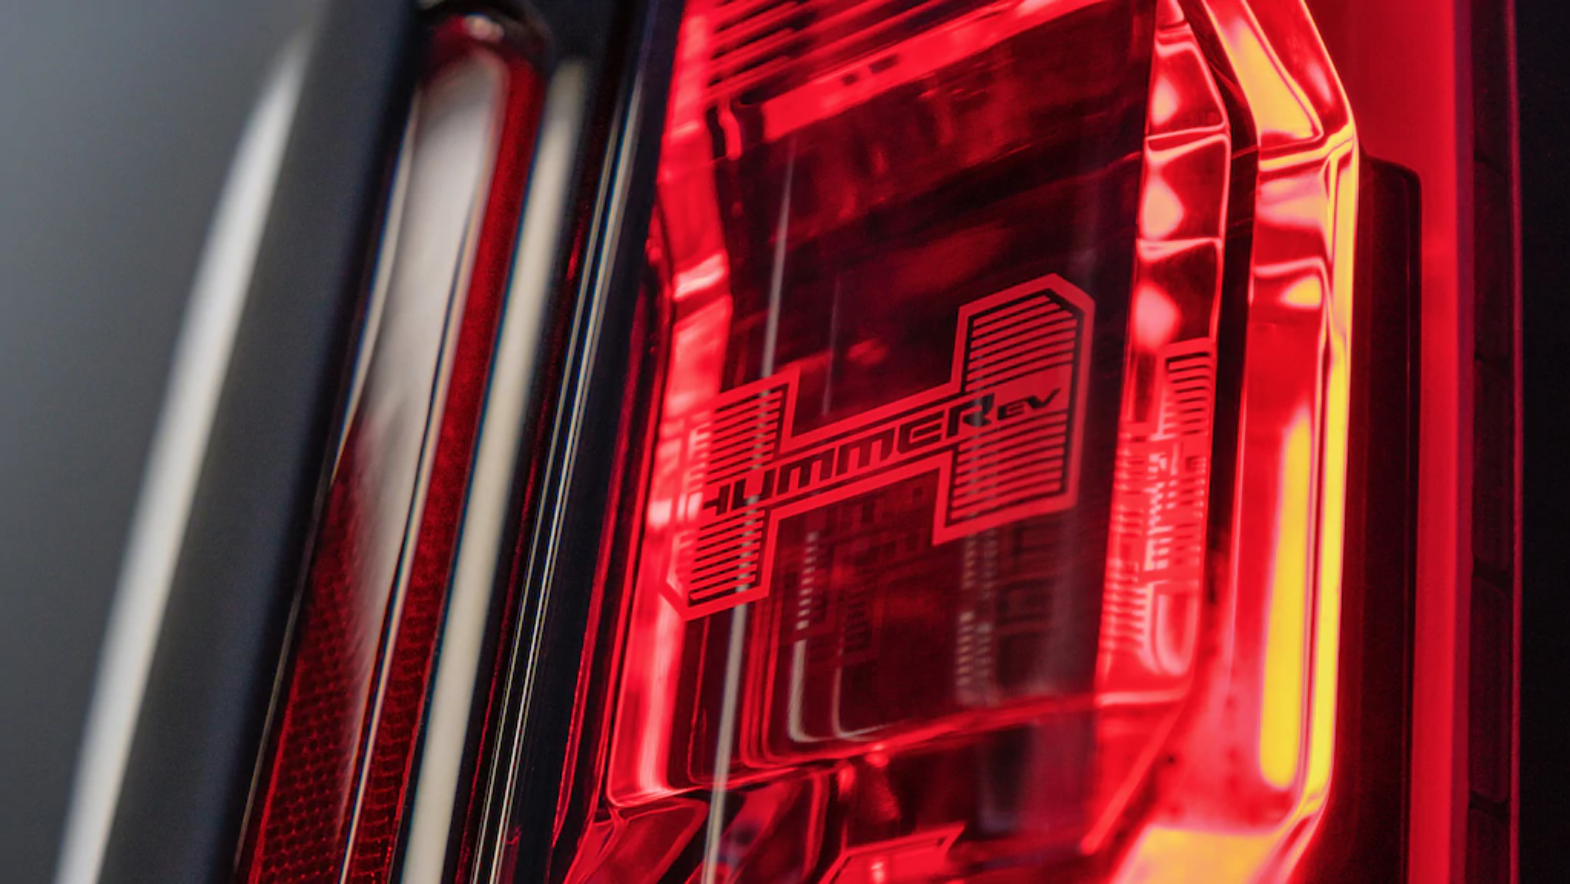 Picture of the Hummer tail light